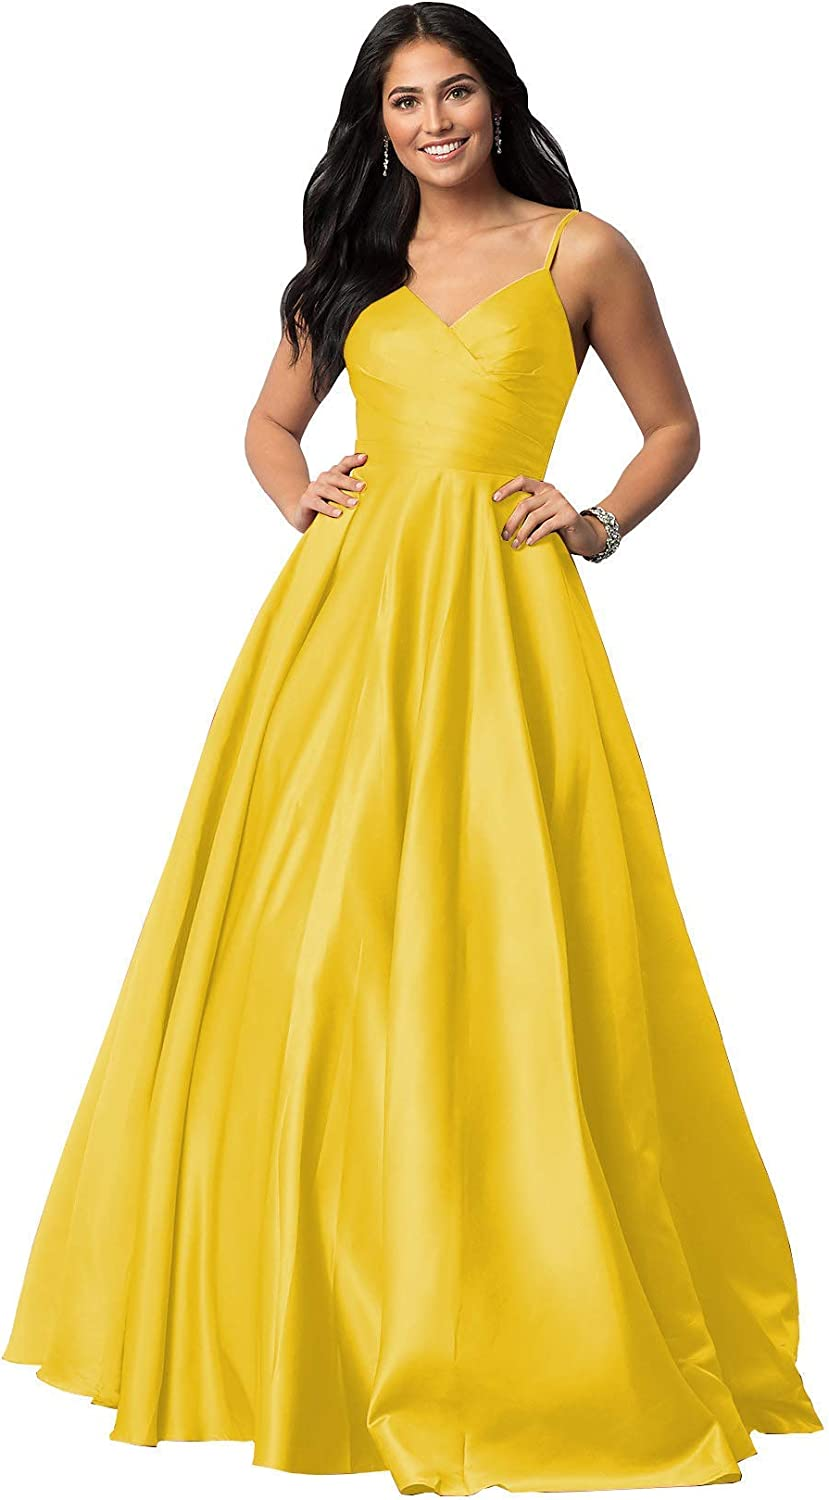 dongprom Women's Satin Prom Dress Long V 55% OFF A-Line Sale special price Straps Form Neck